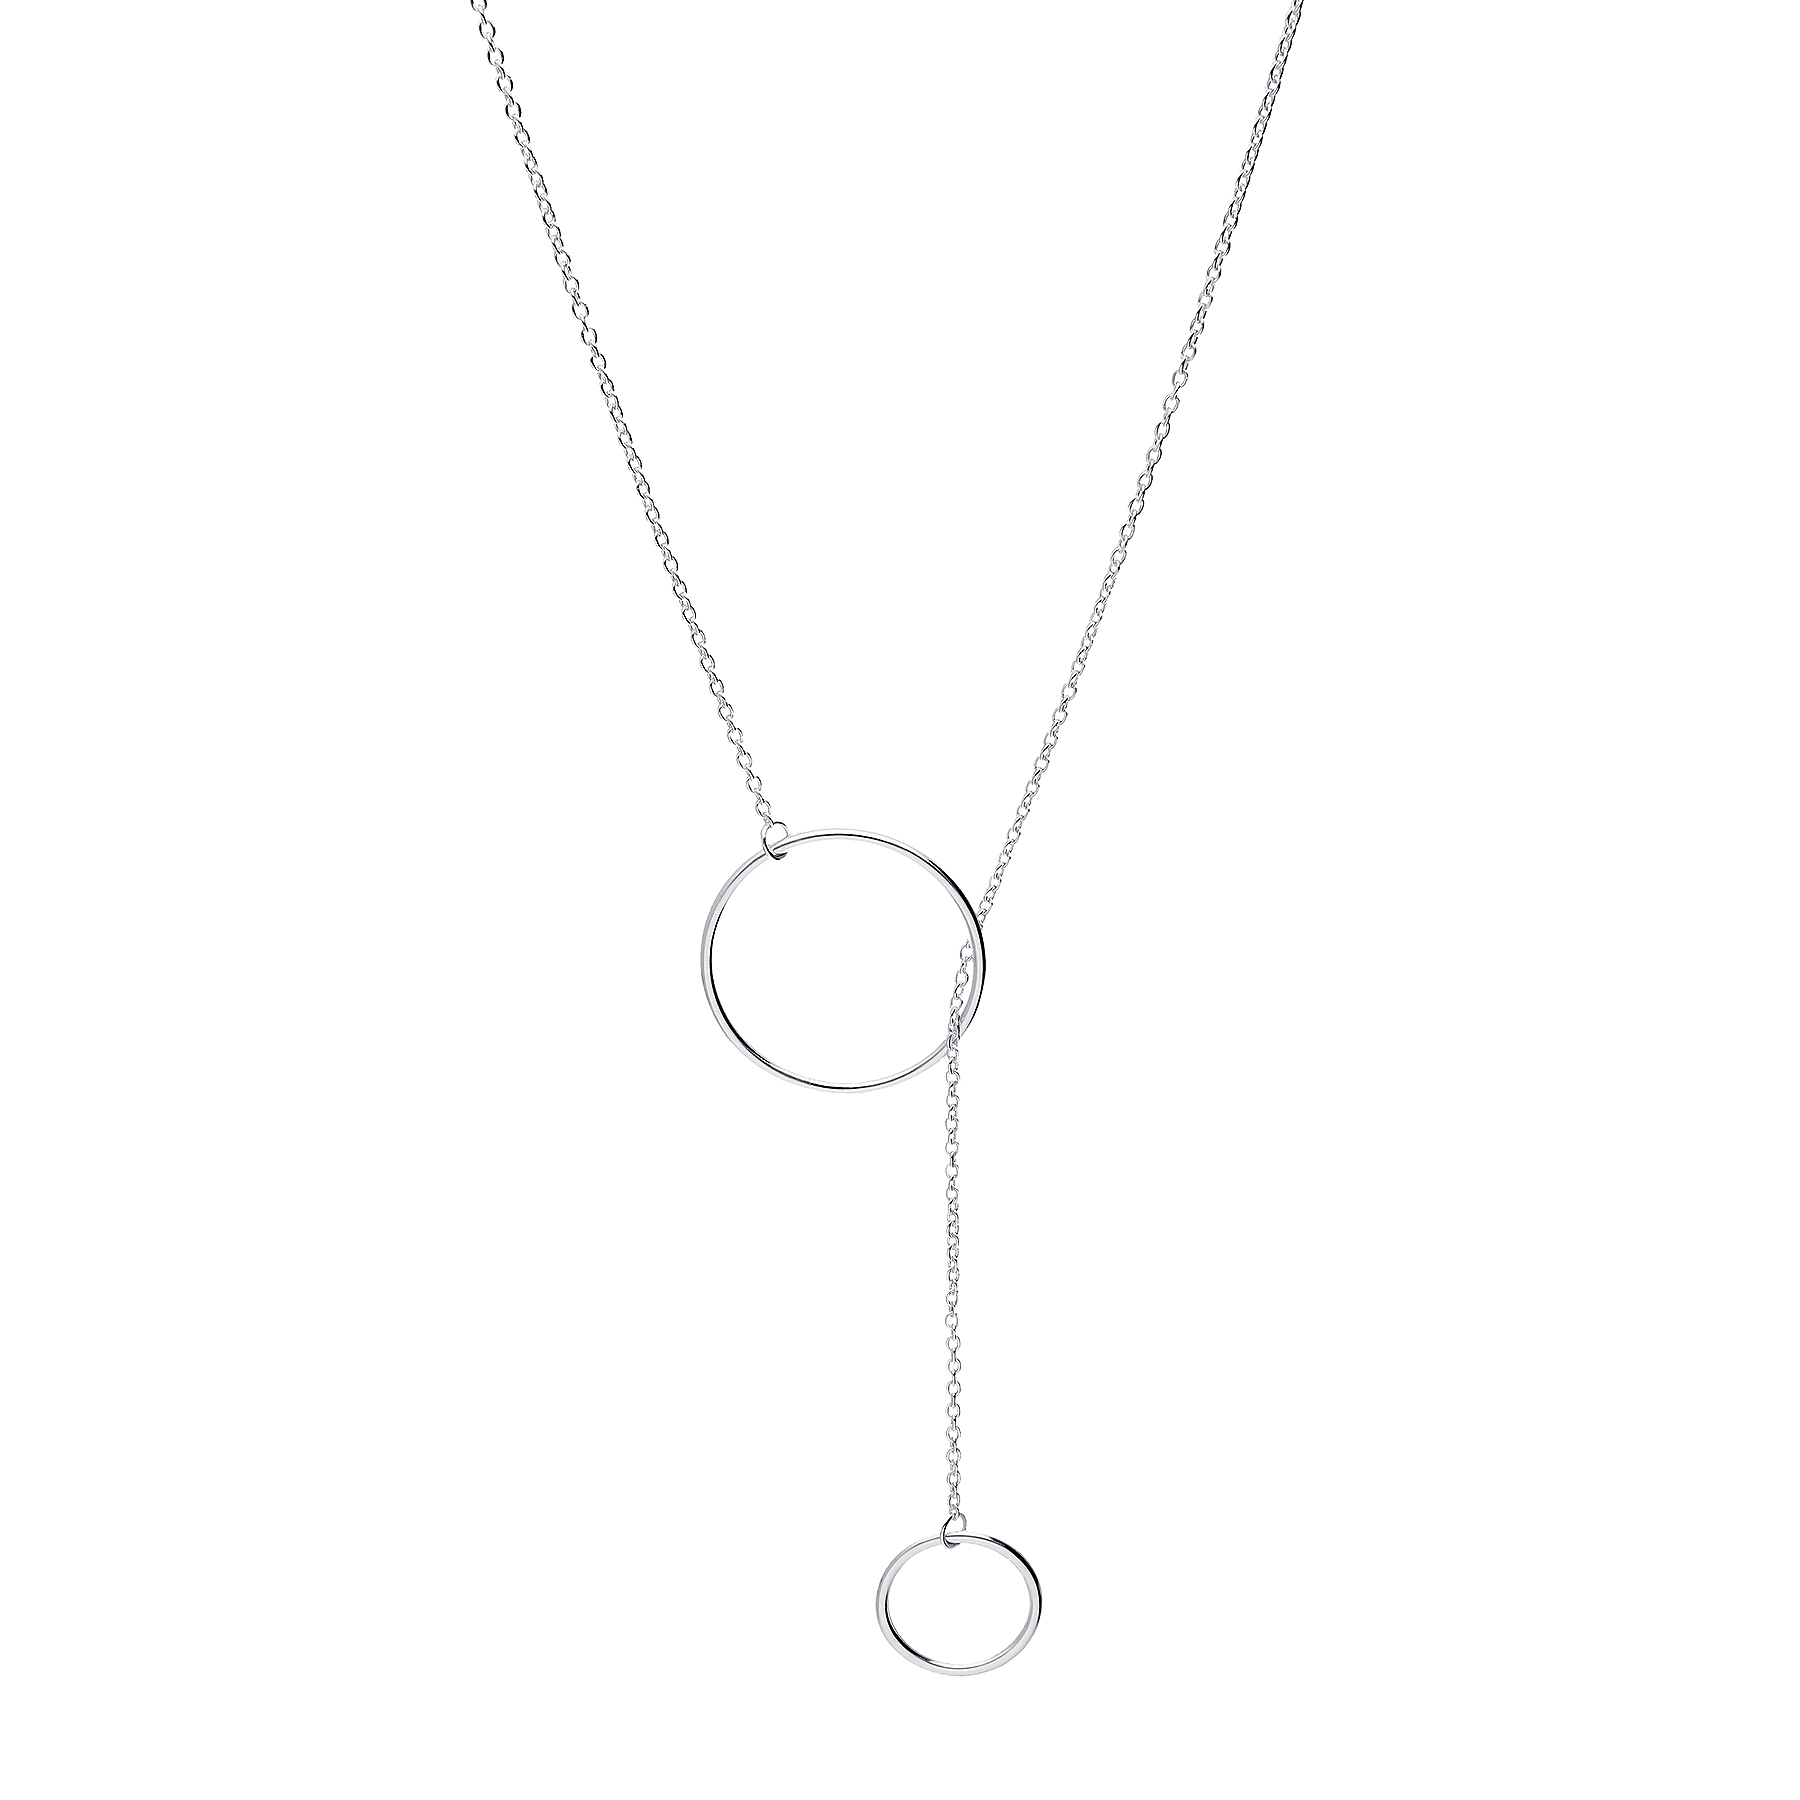 706-28063 - 925 Sterling Silver Circle Necklace